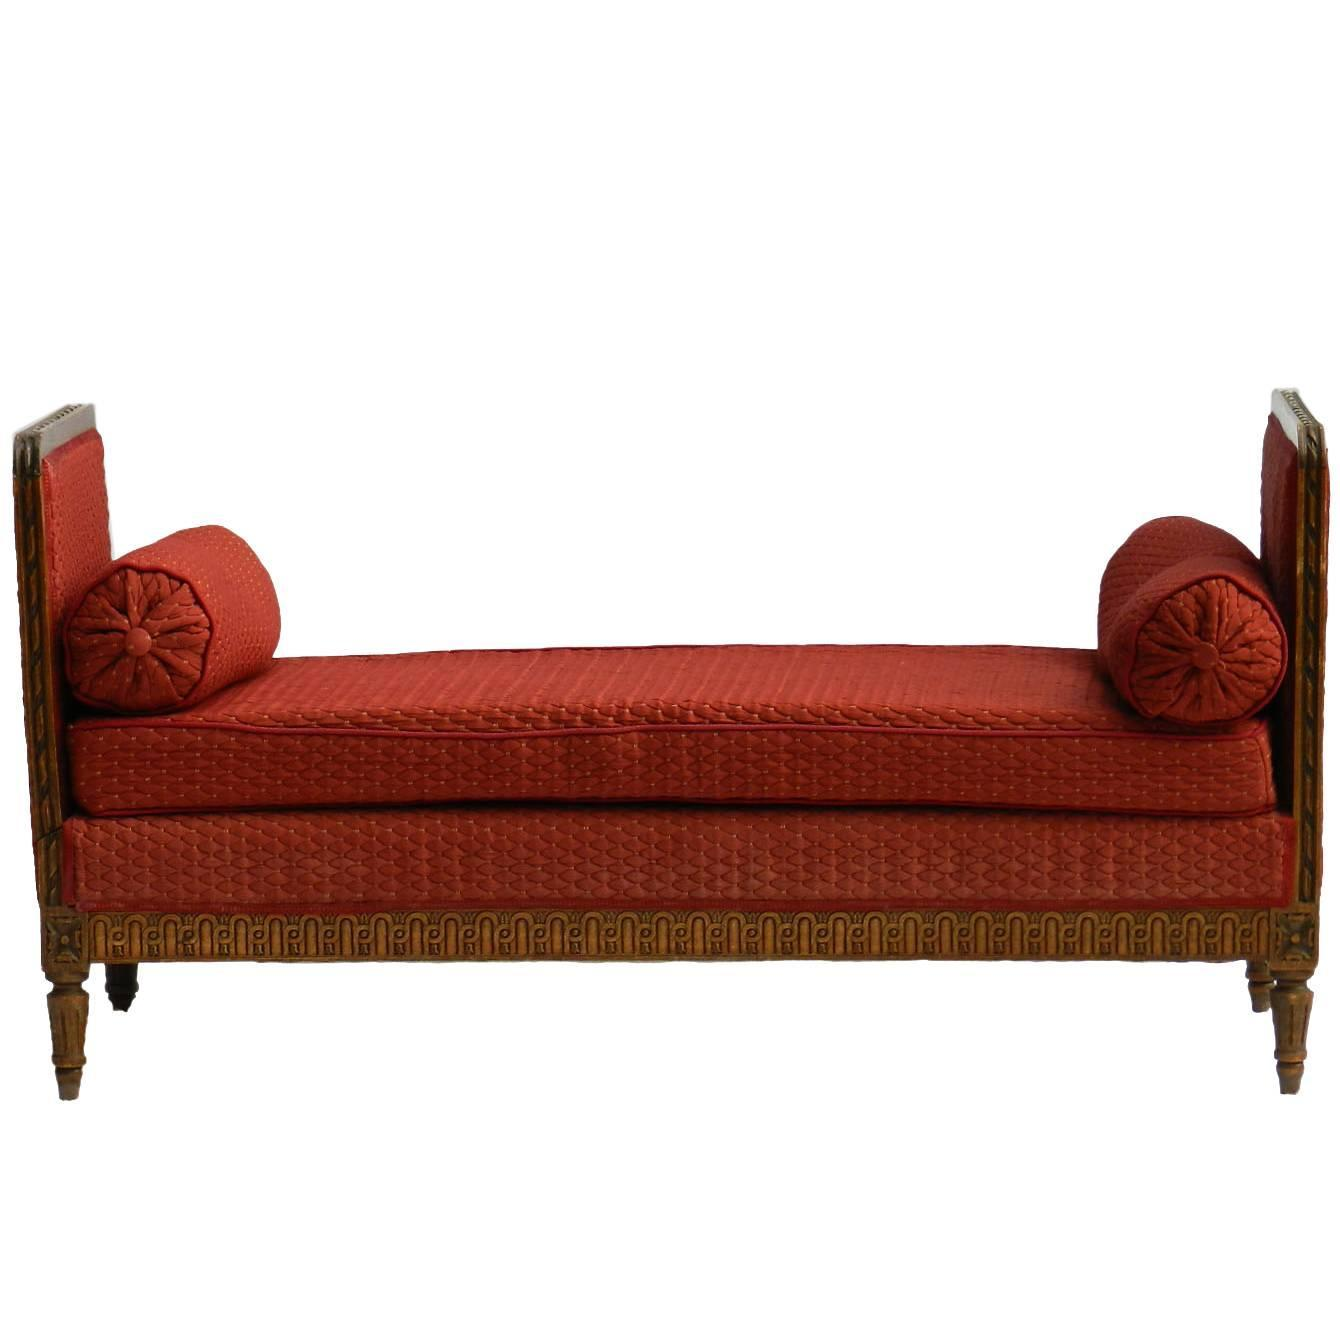 French daybed sofa or single chaise longue in oak circa for Chaise longue daybed